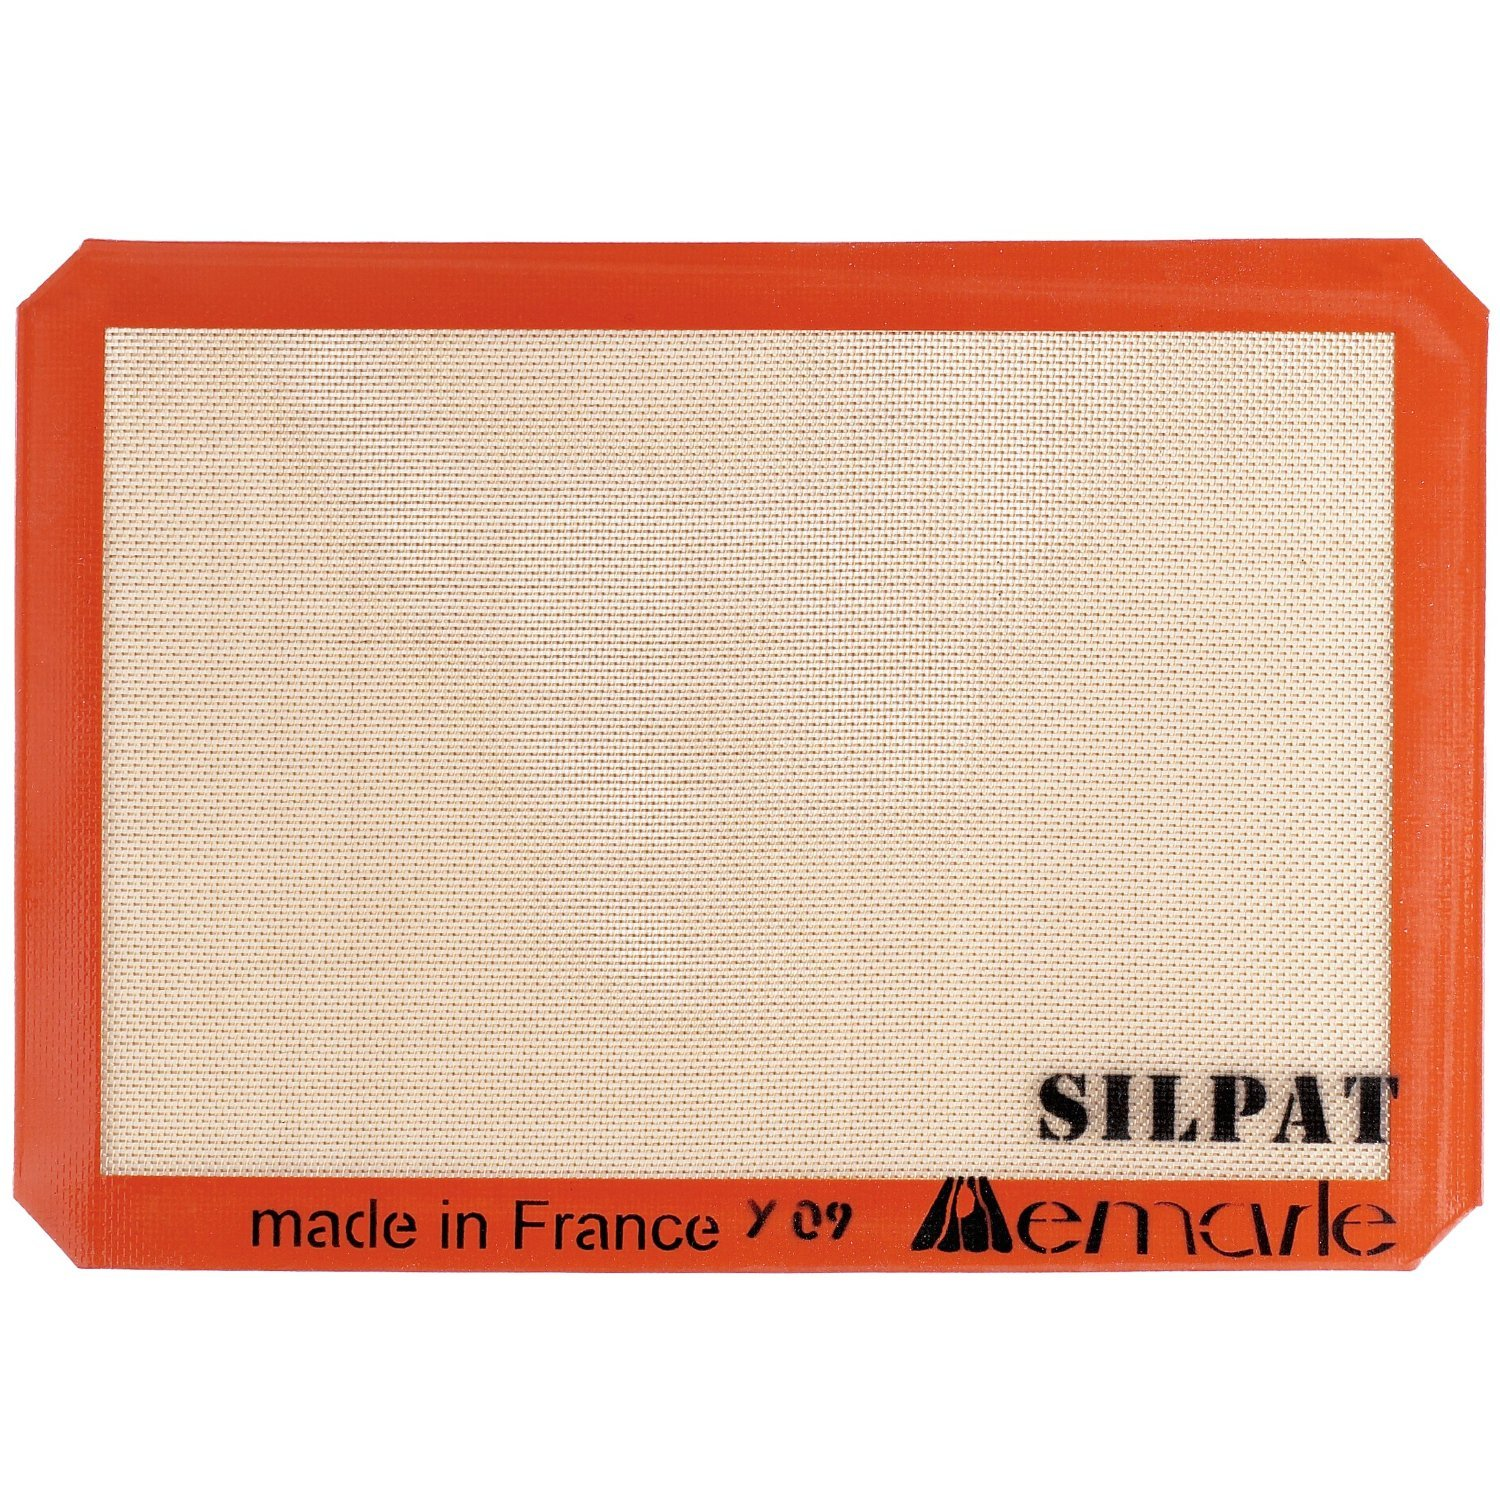 Silpat Non-Stick Silicone Baking Mat- Set of 2 by Silpat